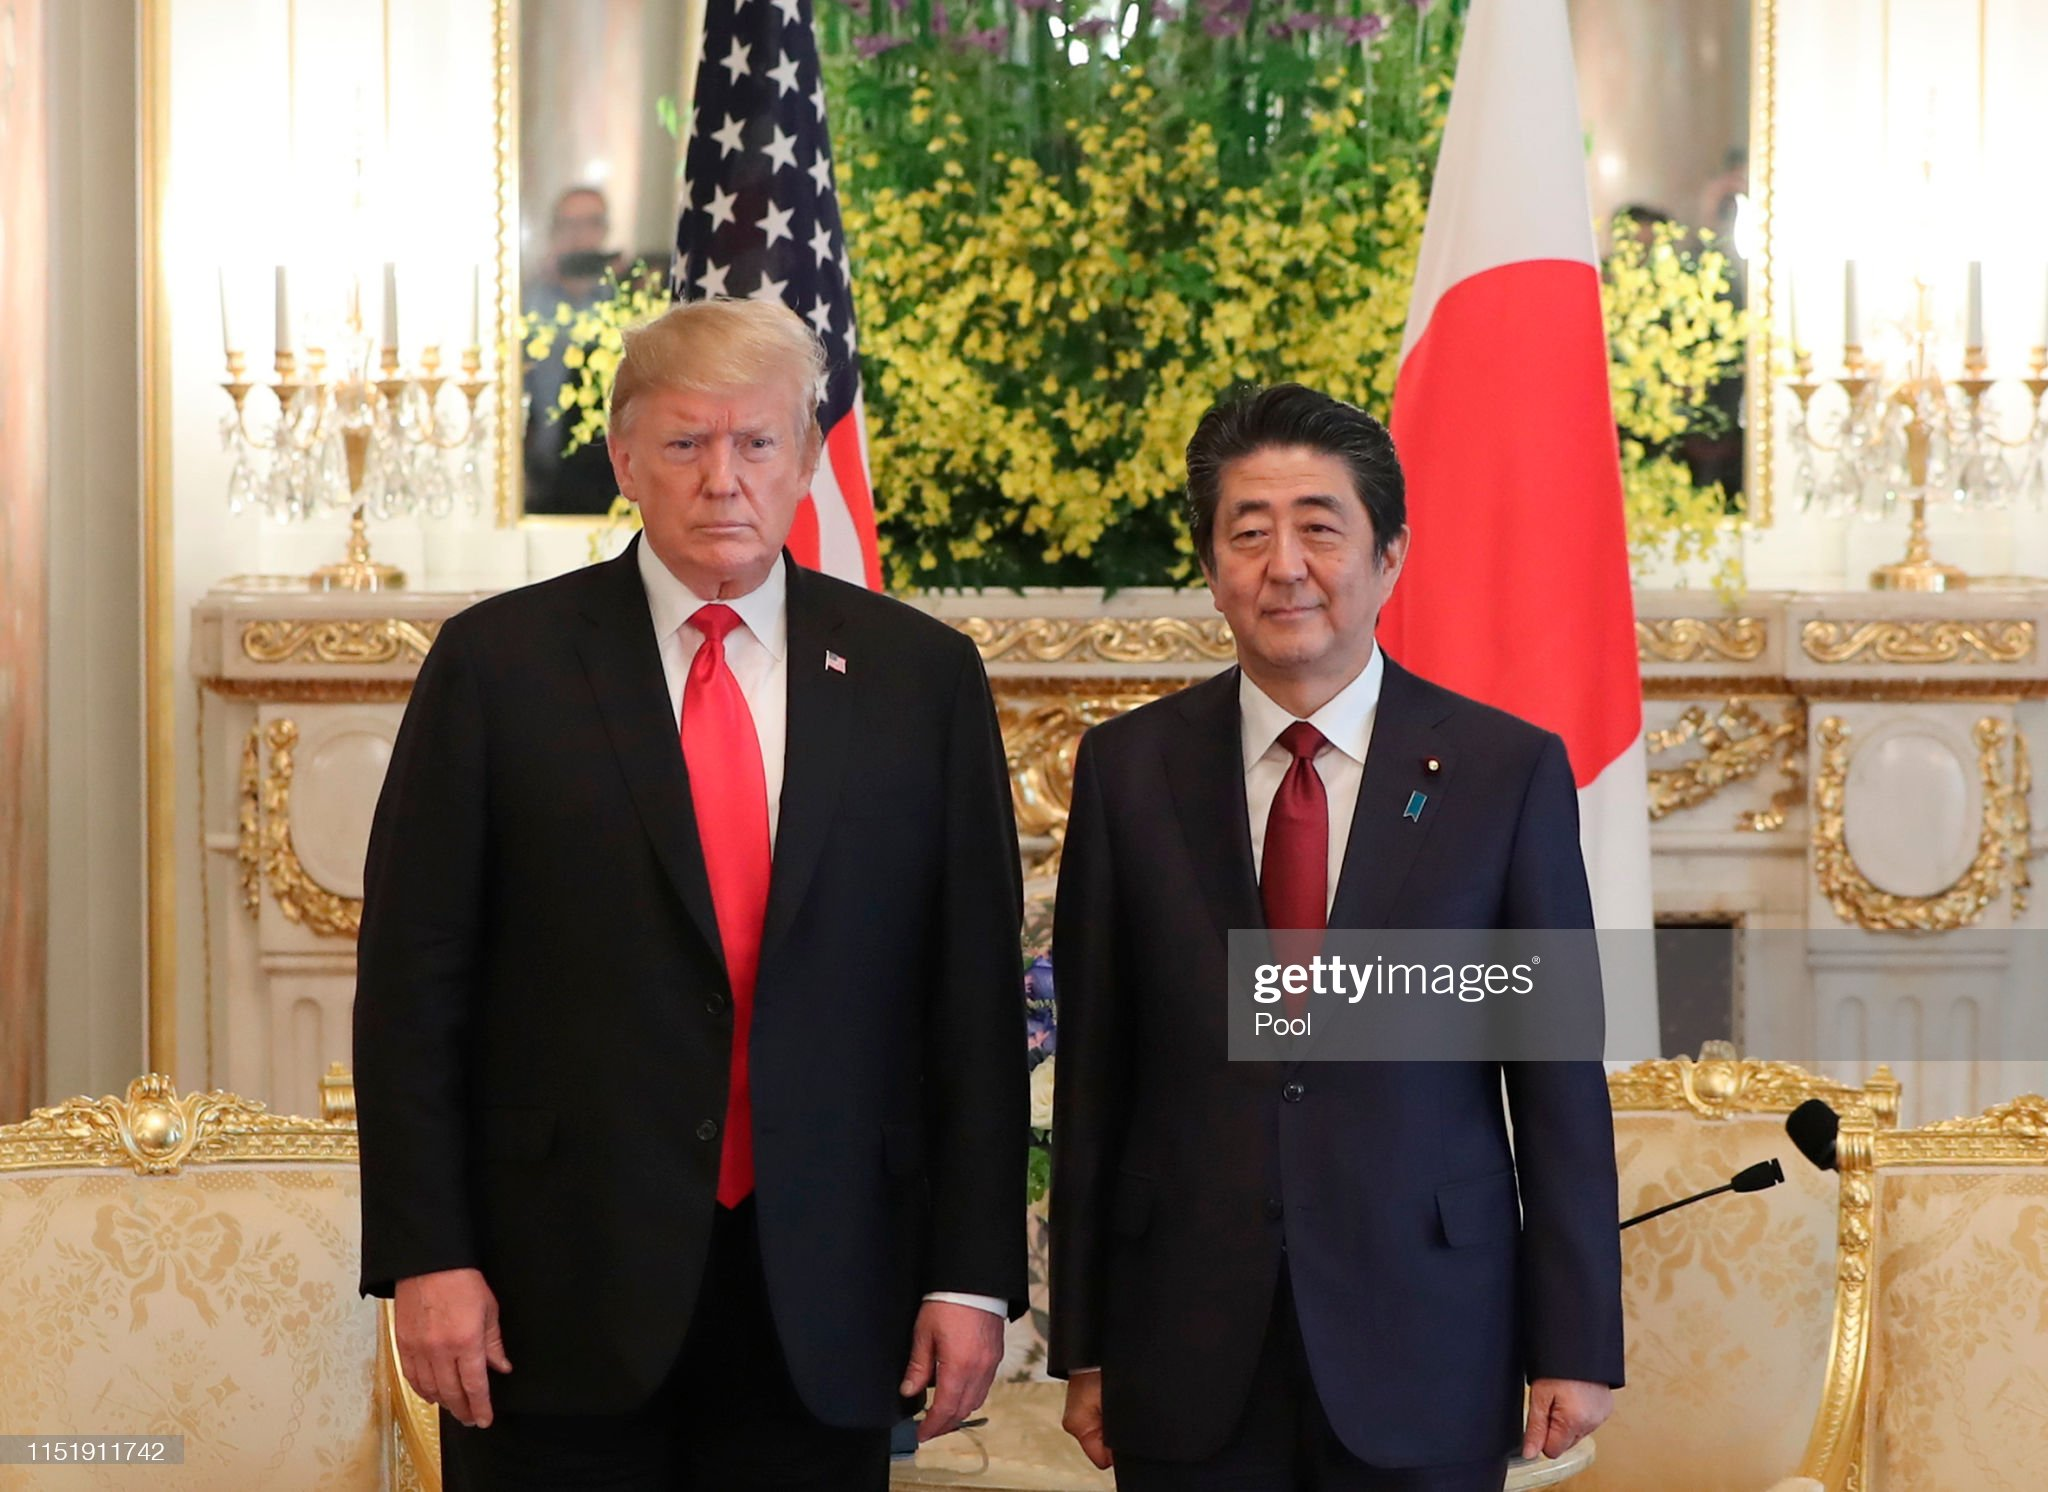 ¿Cuánto mide Donald Trump? - Estatura real y peso - Real height and weight - Página 6 President-donald-trump-and-japanese-prime-minister-shinzo-abe-pose-a-picture-id1151911742?s=2048x2048